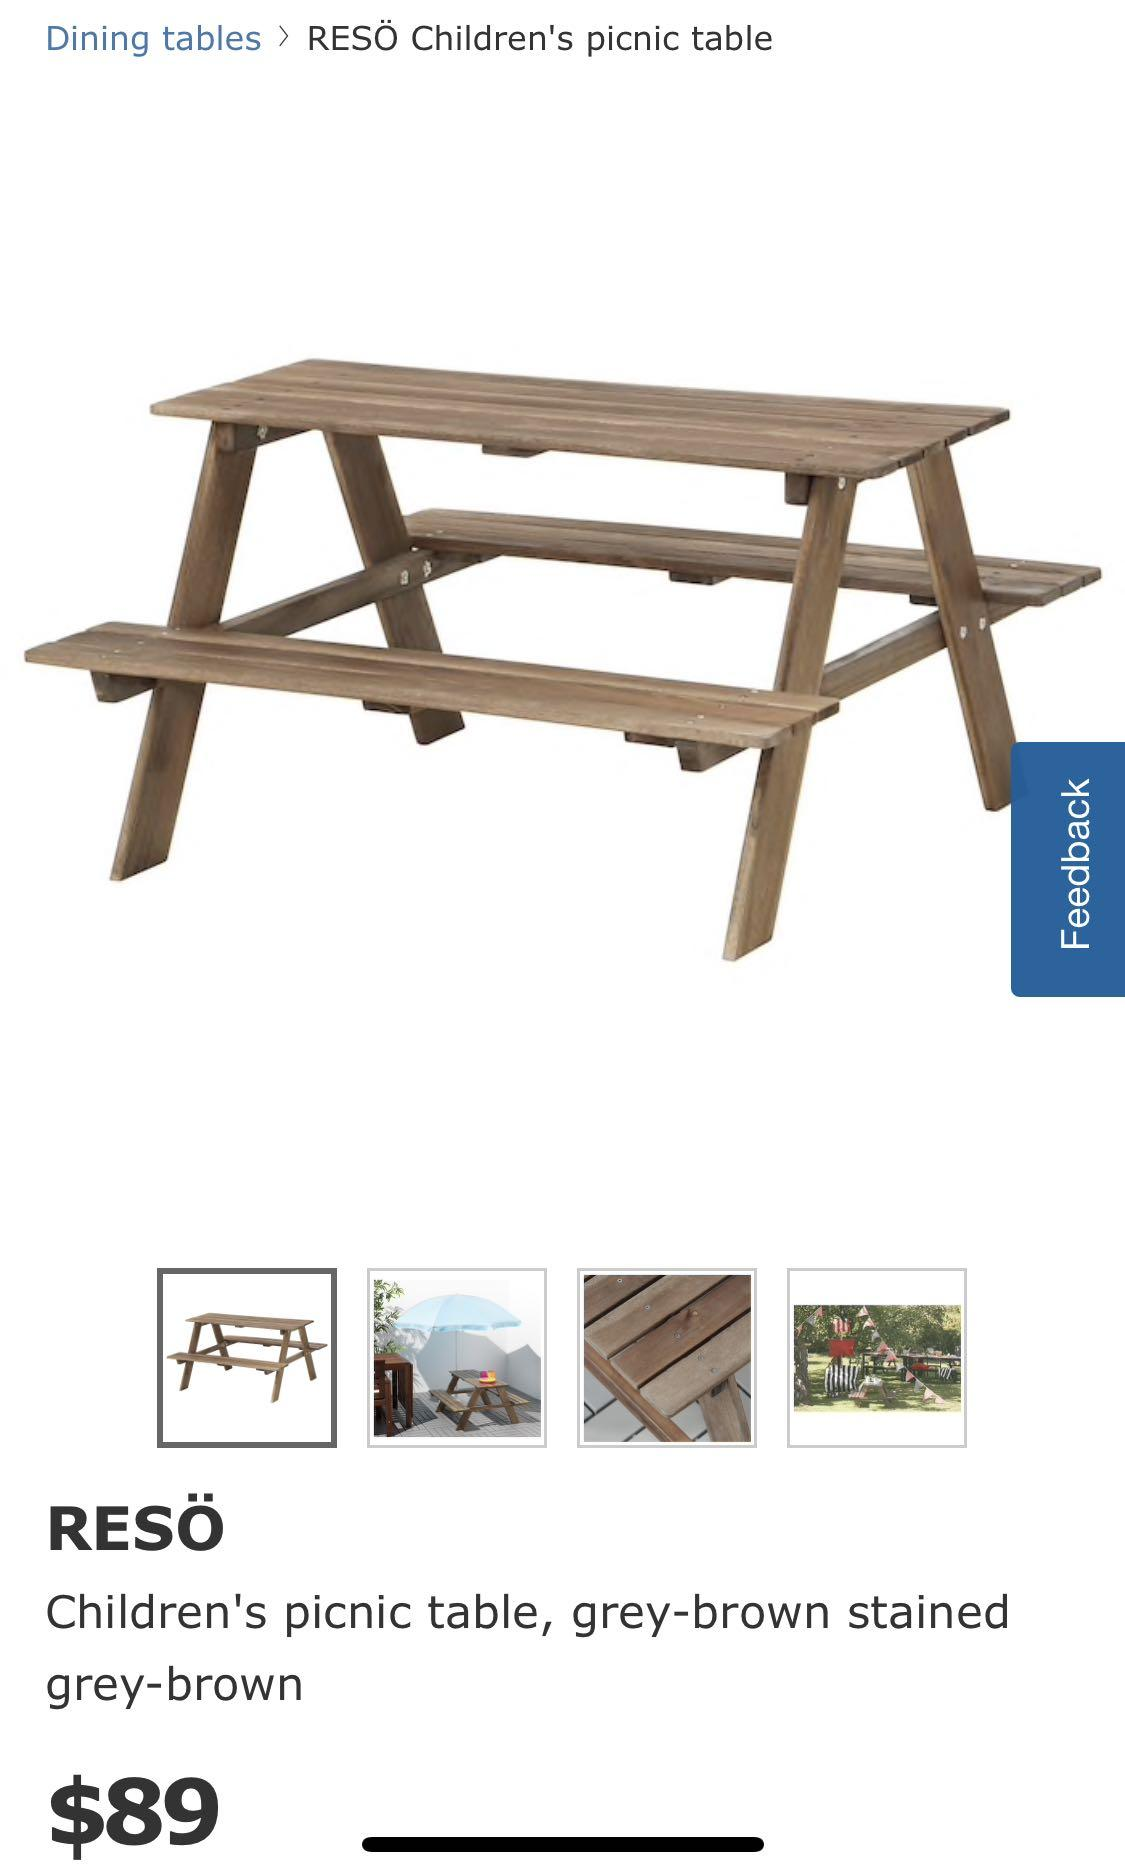 Awe Inspiring Ikea Reso Children Picnic Table Furniture Tables Chairs Unemploymentrelief Wooden Chair Designs For Living Room Unemploymentrelieforg